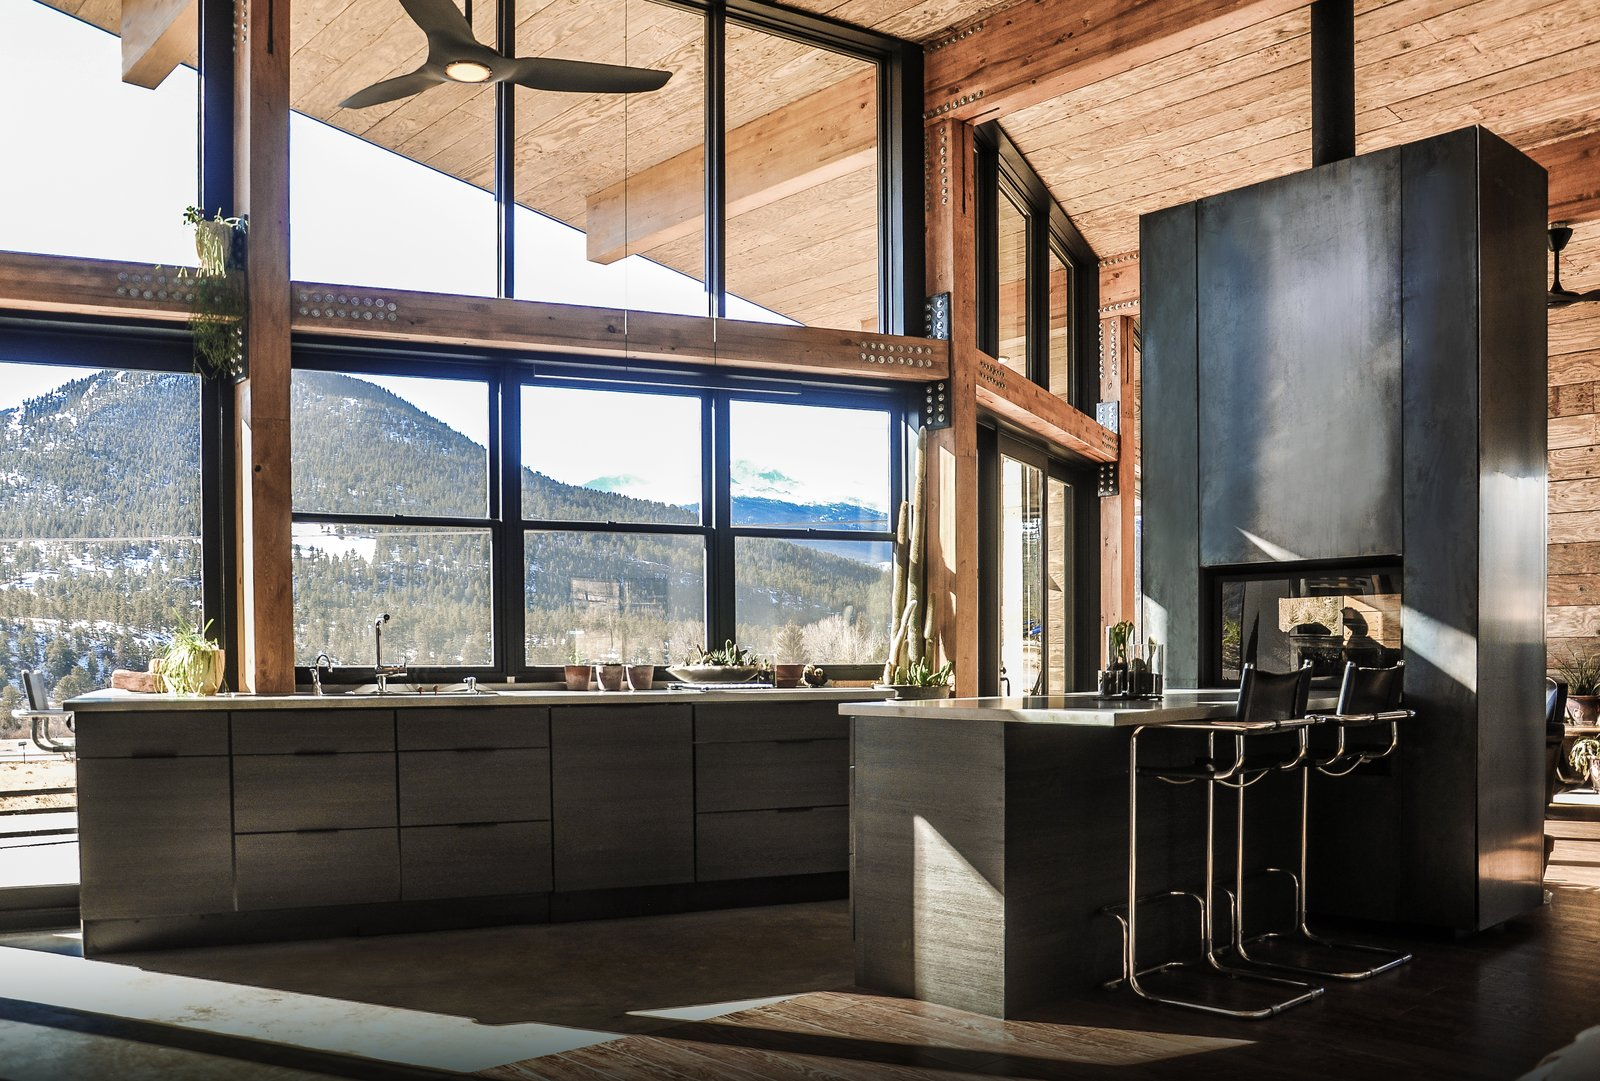 Kitchen, Refrigerator, Microwave, Cooktops, Wood, Dishwasher, Ceiling, Metal, Dark Hardwood, Concrete, Concrete, Range, Wall Oven, Pendant, Concrete, Accent, and Drop In The warm industrial kitchen celebrates views of Rocky Mountain National Park beyond. A see-through, steel fireplace becomes a glowing beacon that warms the kitchen and living room at the heart of the home.   Best Kitchen Concrete Cooktops Ceiling Metal Refrigerator Dishwasher Photos from Estes Park Residence